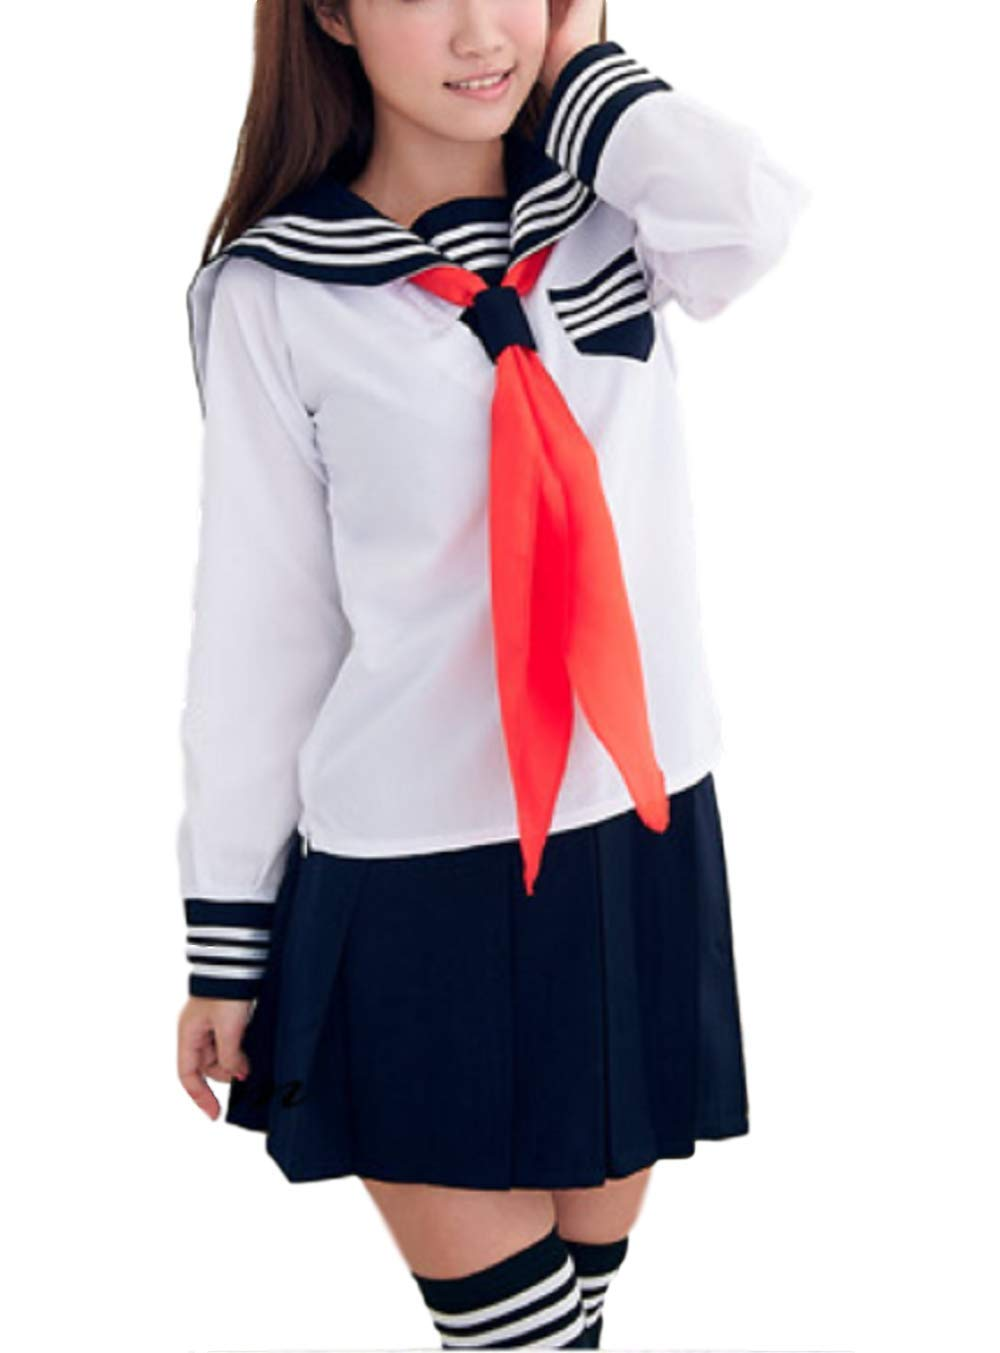 EMONJAY Women's Sailor Suit Japanese School Uniform Cosplay Costume with Socks (Large, White)